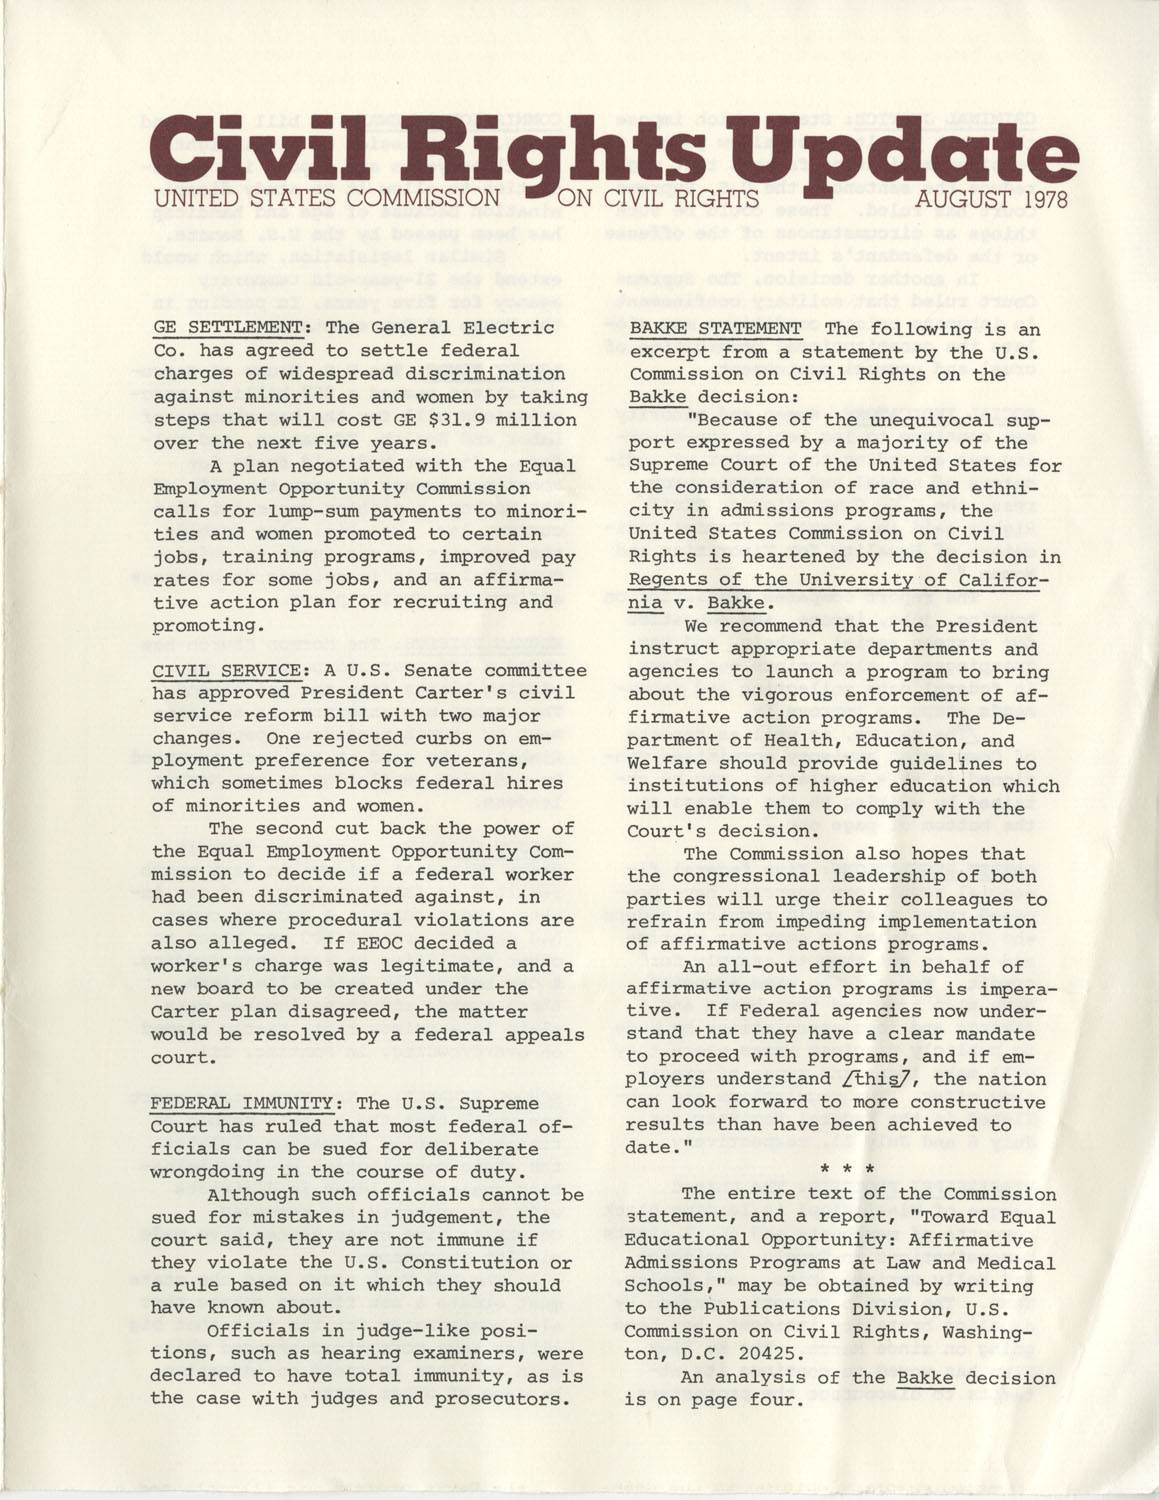 Civil Rights Update, August 1978